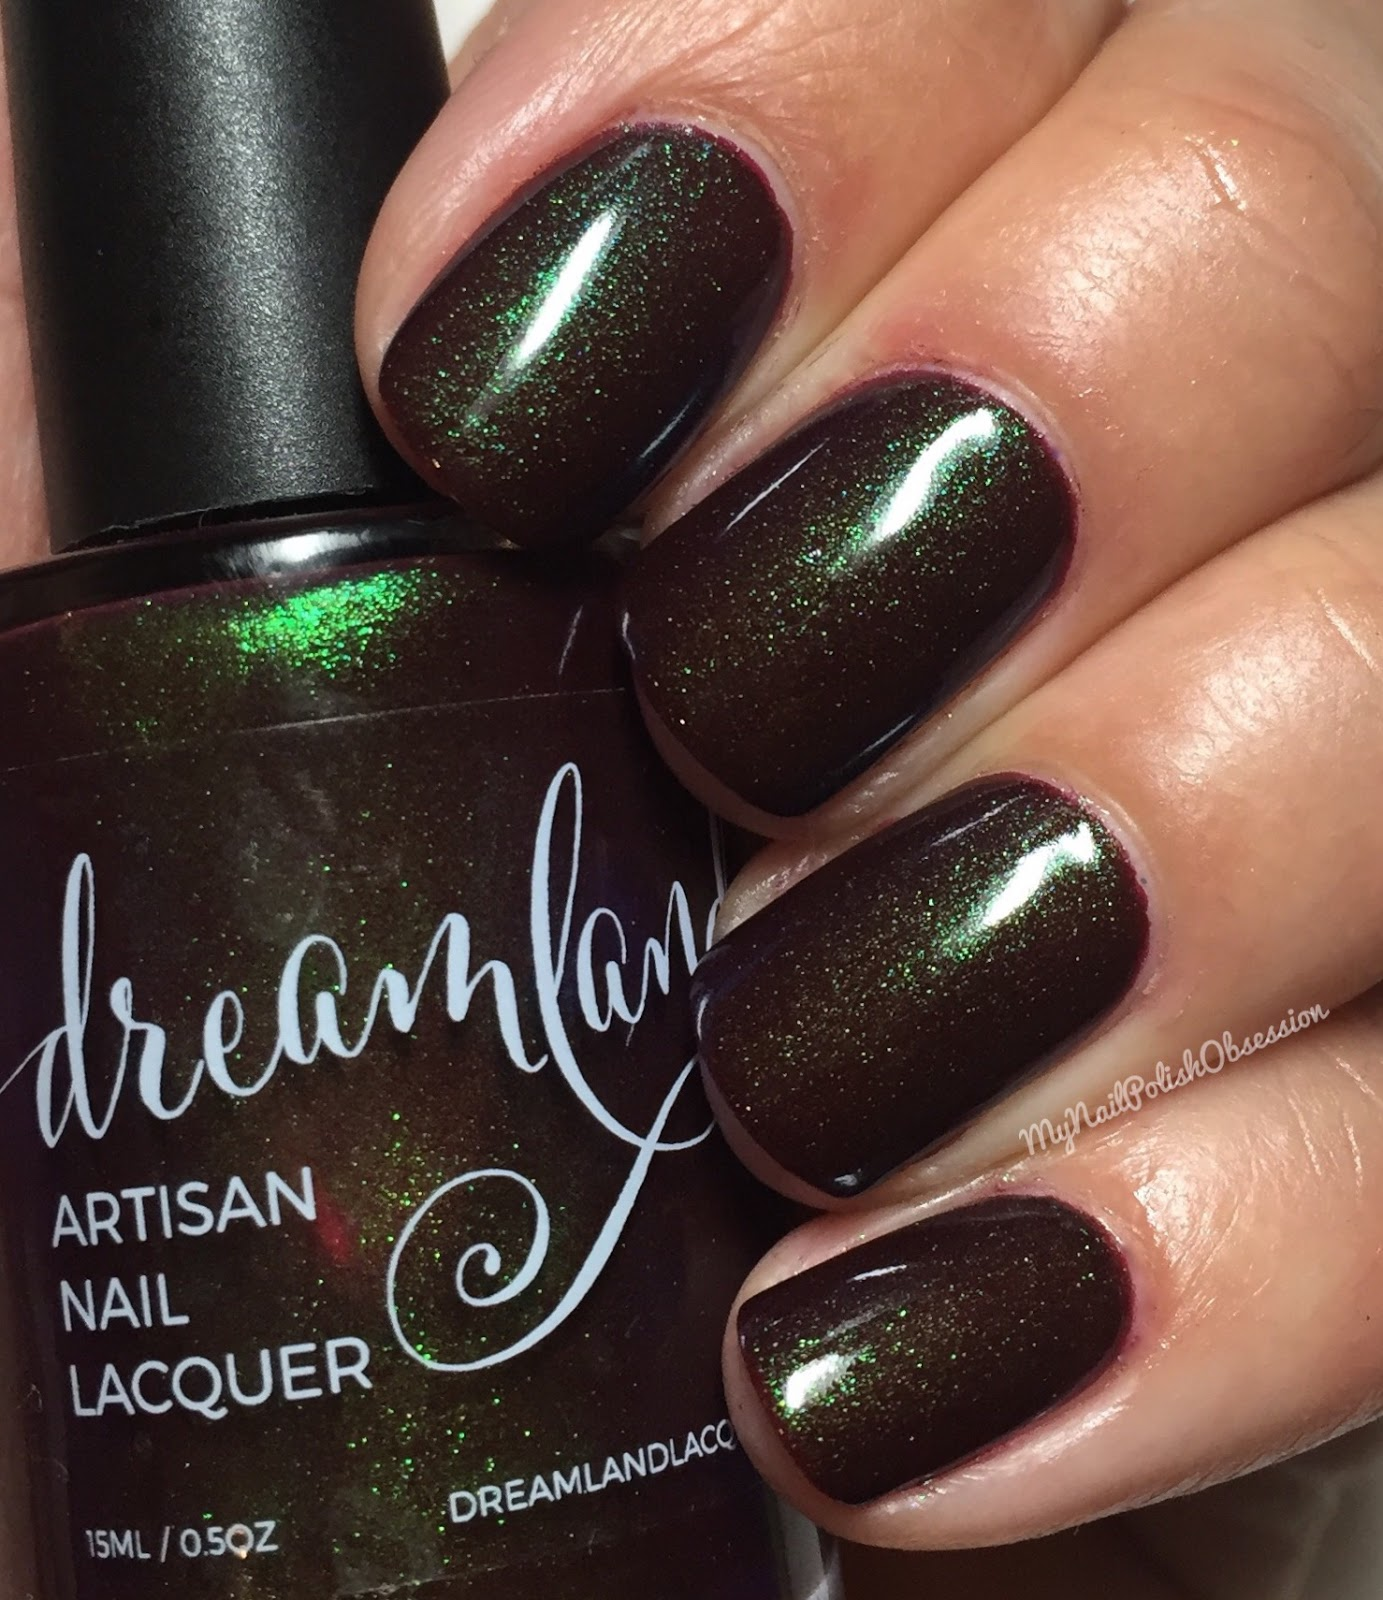 Amazing Fast And Easy Nail Art Thin Marc Jacobs Nail Polish Review Round Gel Nail Polish Design Ideas Dmso Nail Fungus Youthful Nail Art With Toothpick Videos OrangeOrly Nail Polish Colors My Nail Polish Obsession: My Nail Polish Obsession 4 Year ..